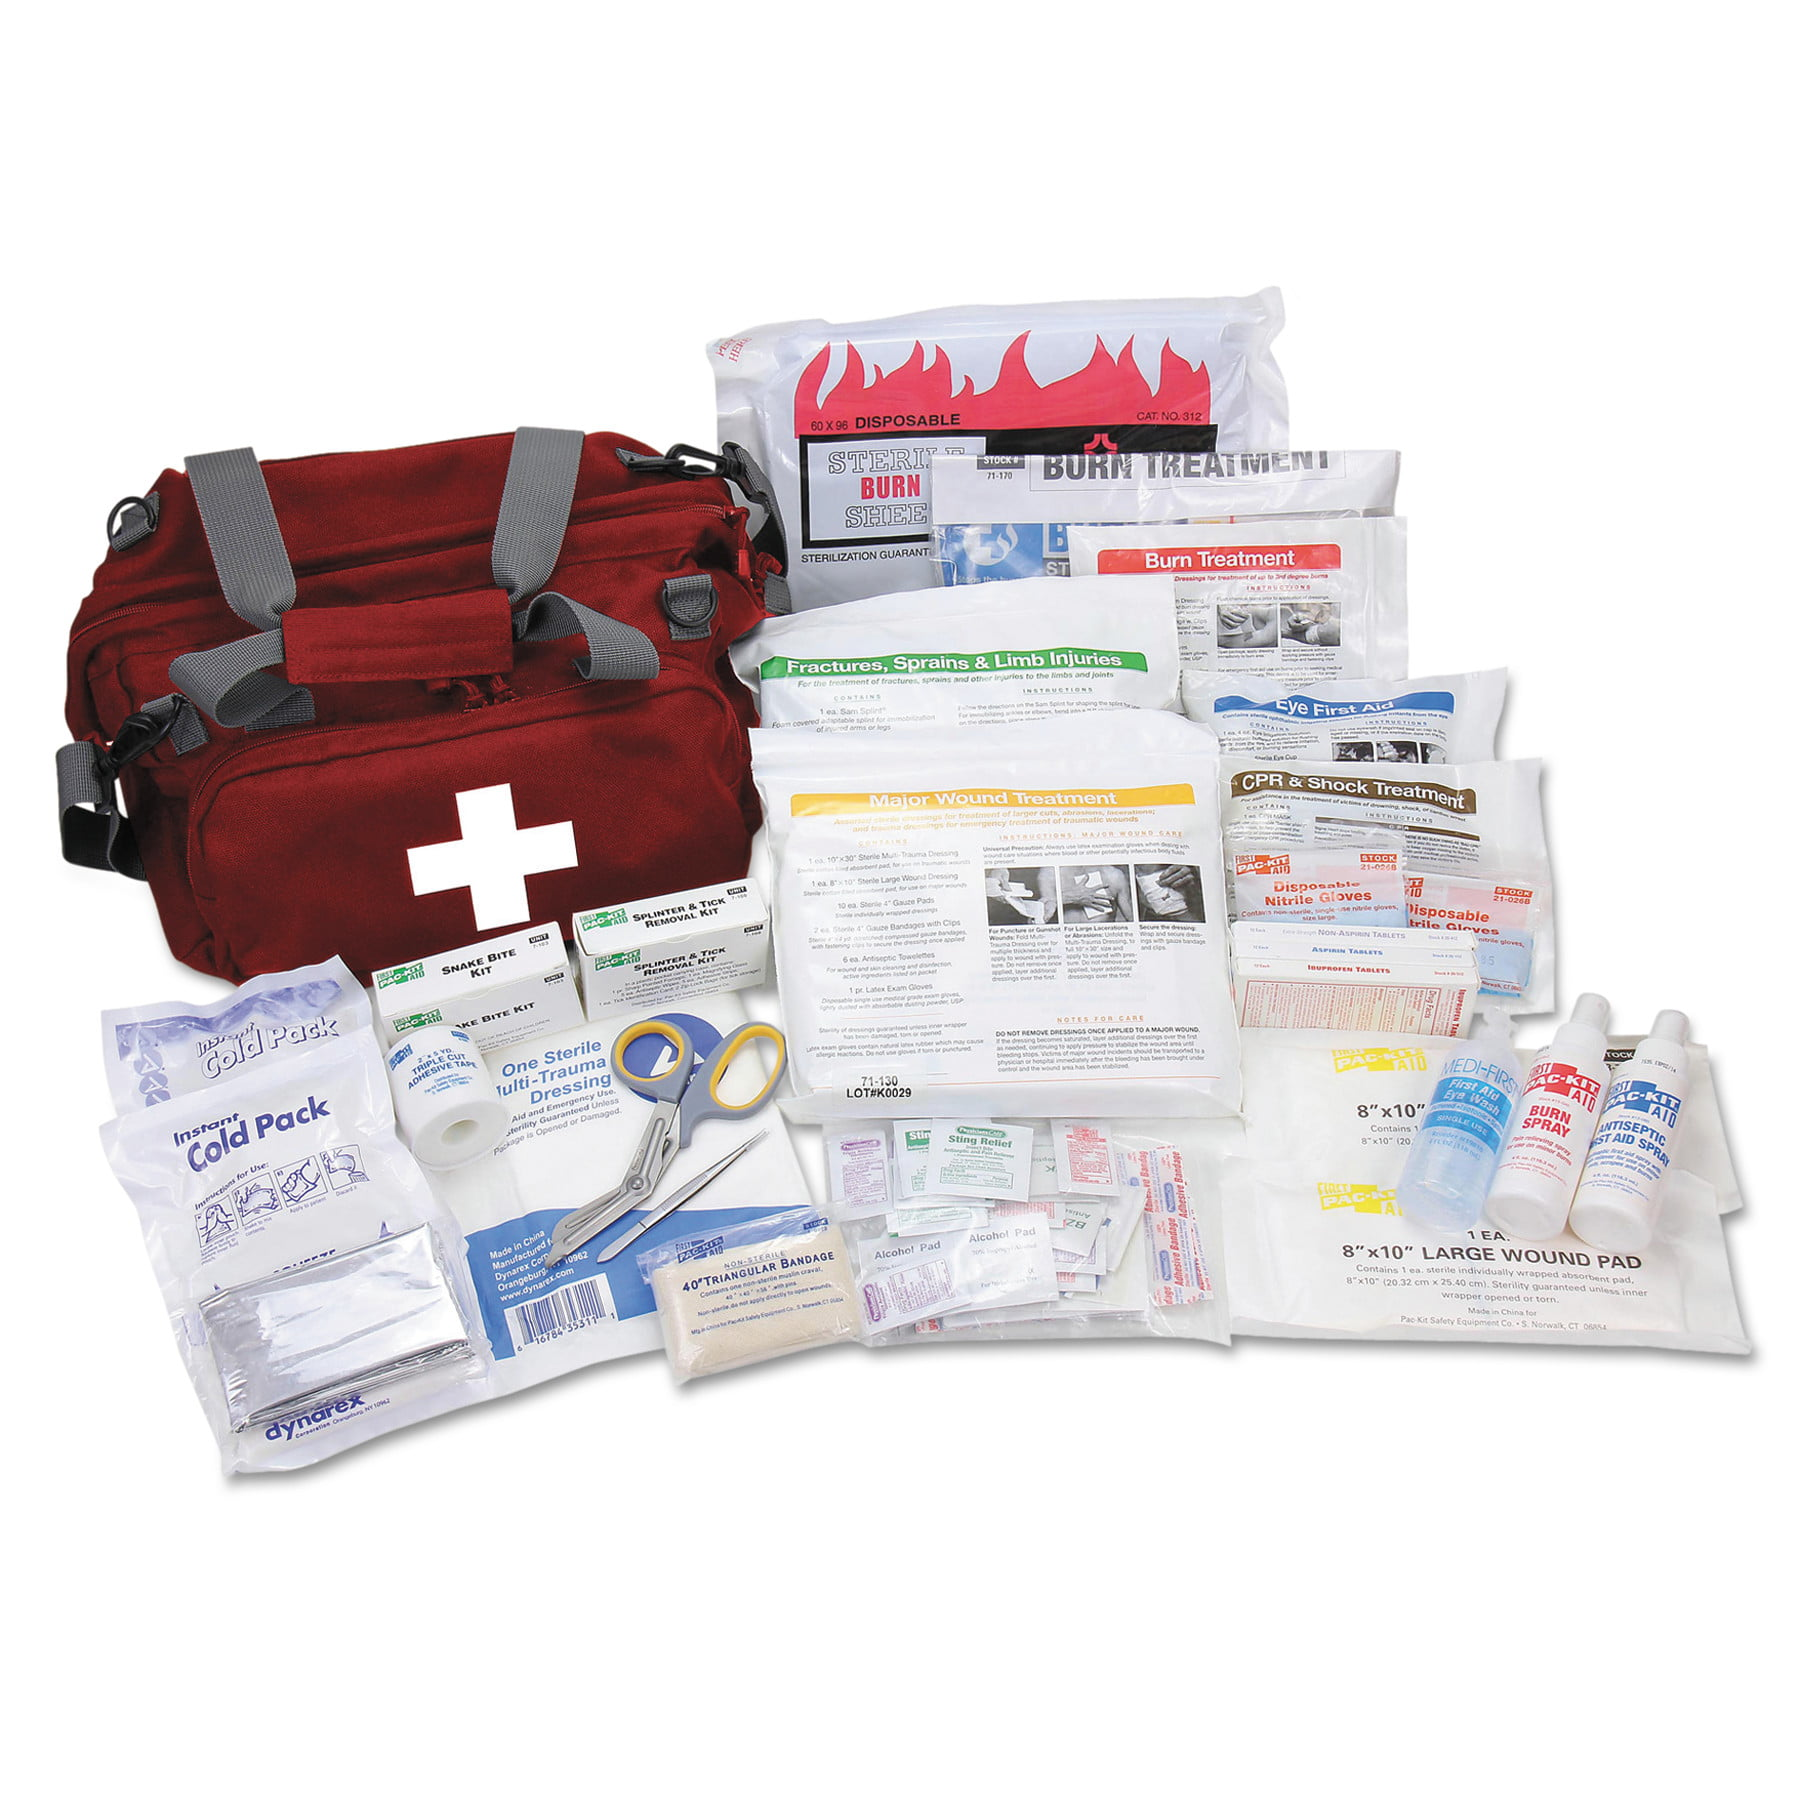 Pac-Kit All Terrain First Aid Kit, 112 Pieces, Ballistic Nylon, Red by ACME UNITED CORPORATION